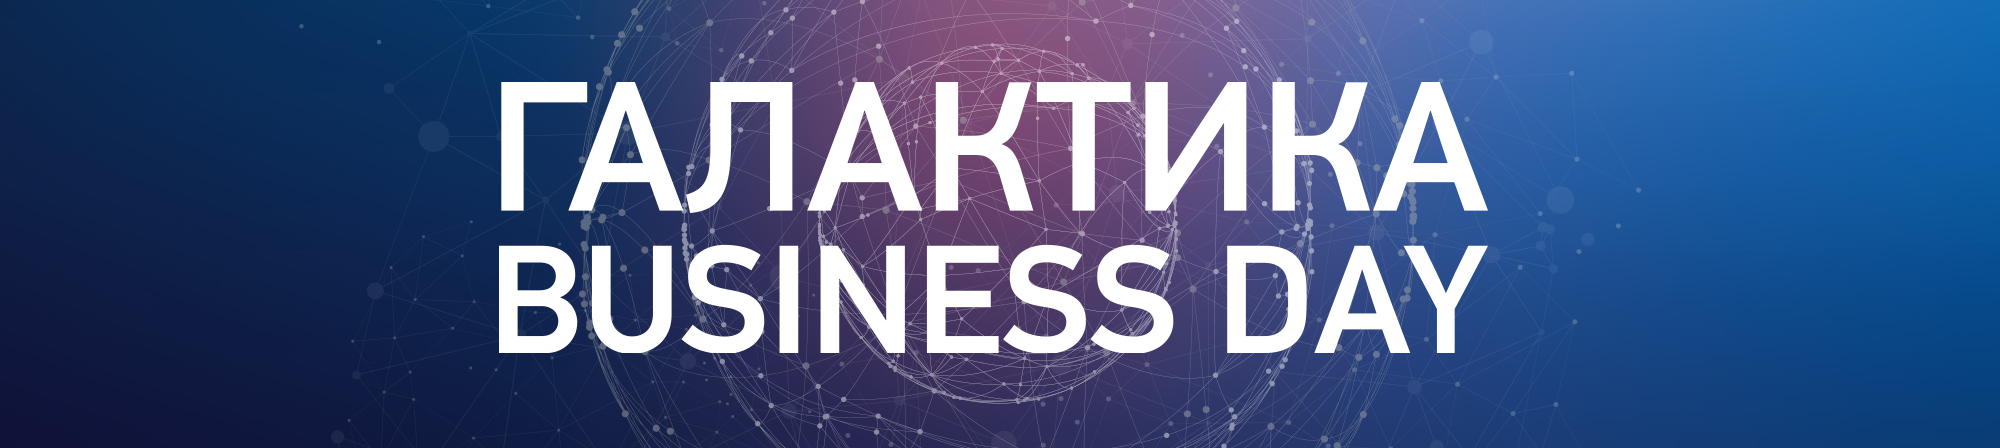 ОМЕГАЛЬЯНС на конференции «Галактика Business Day»